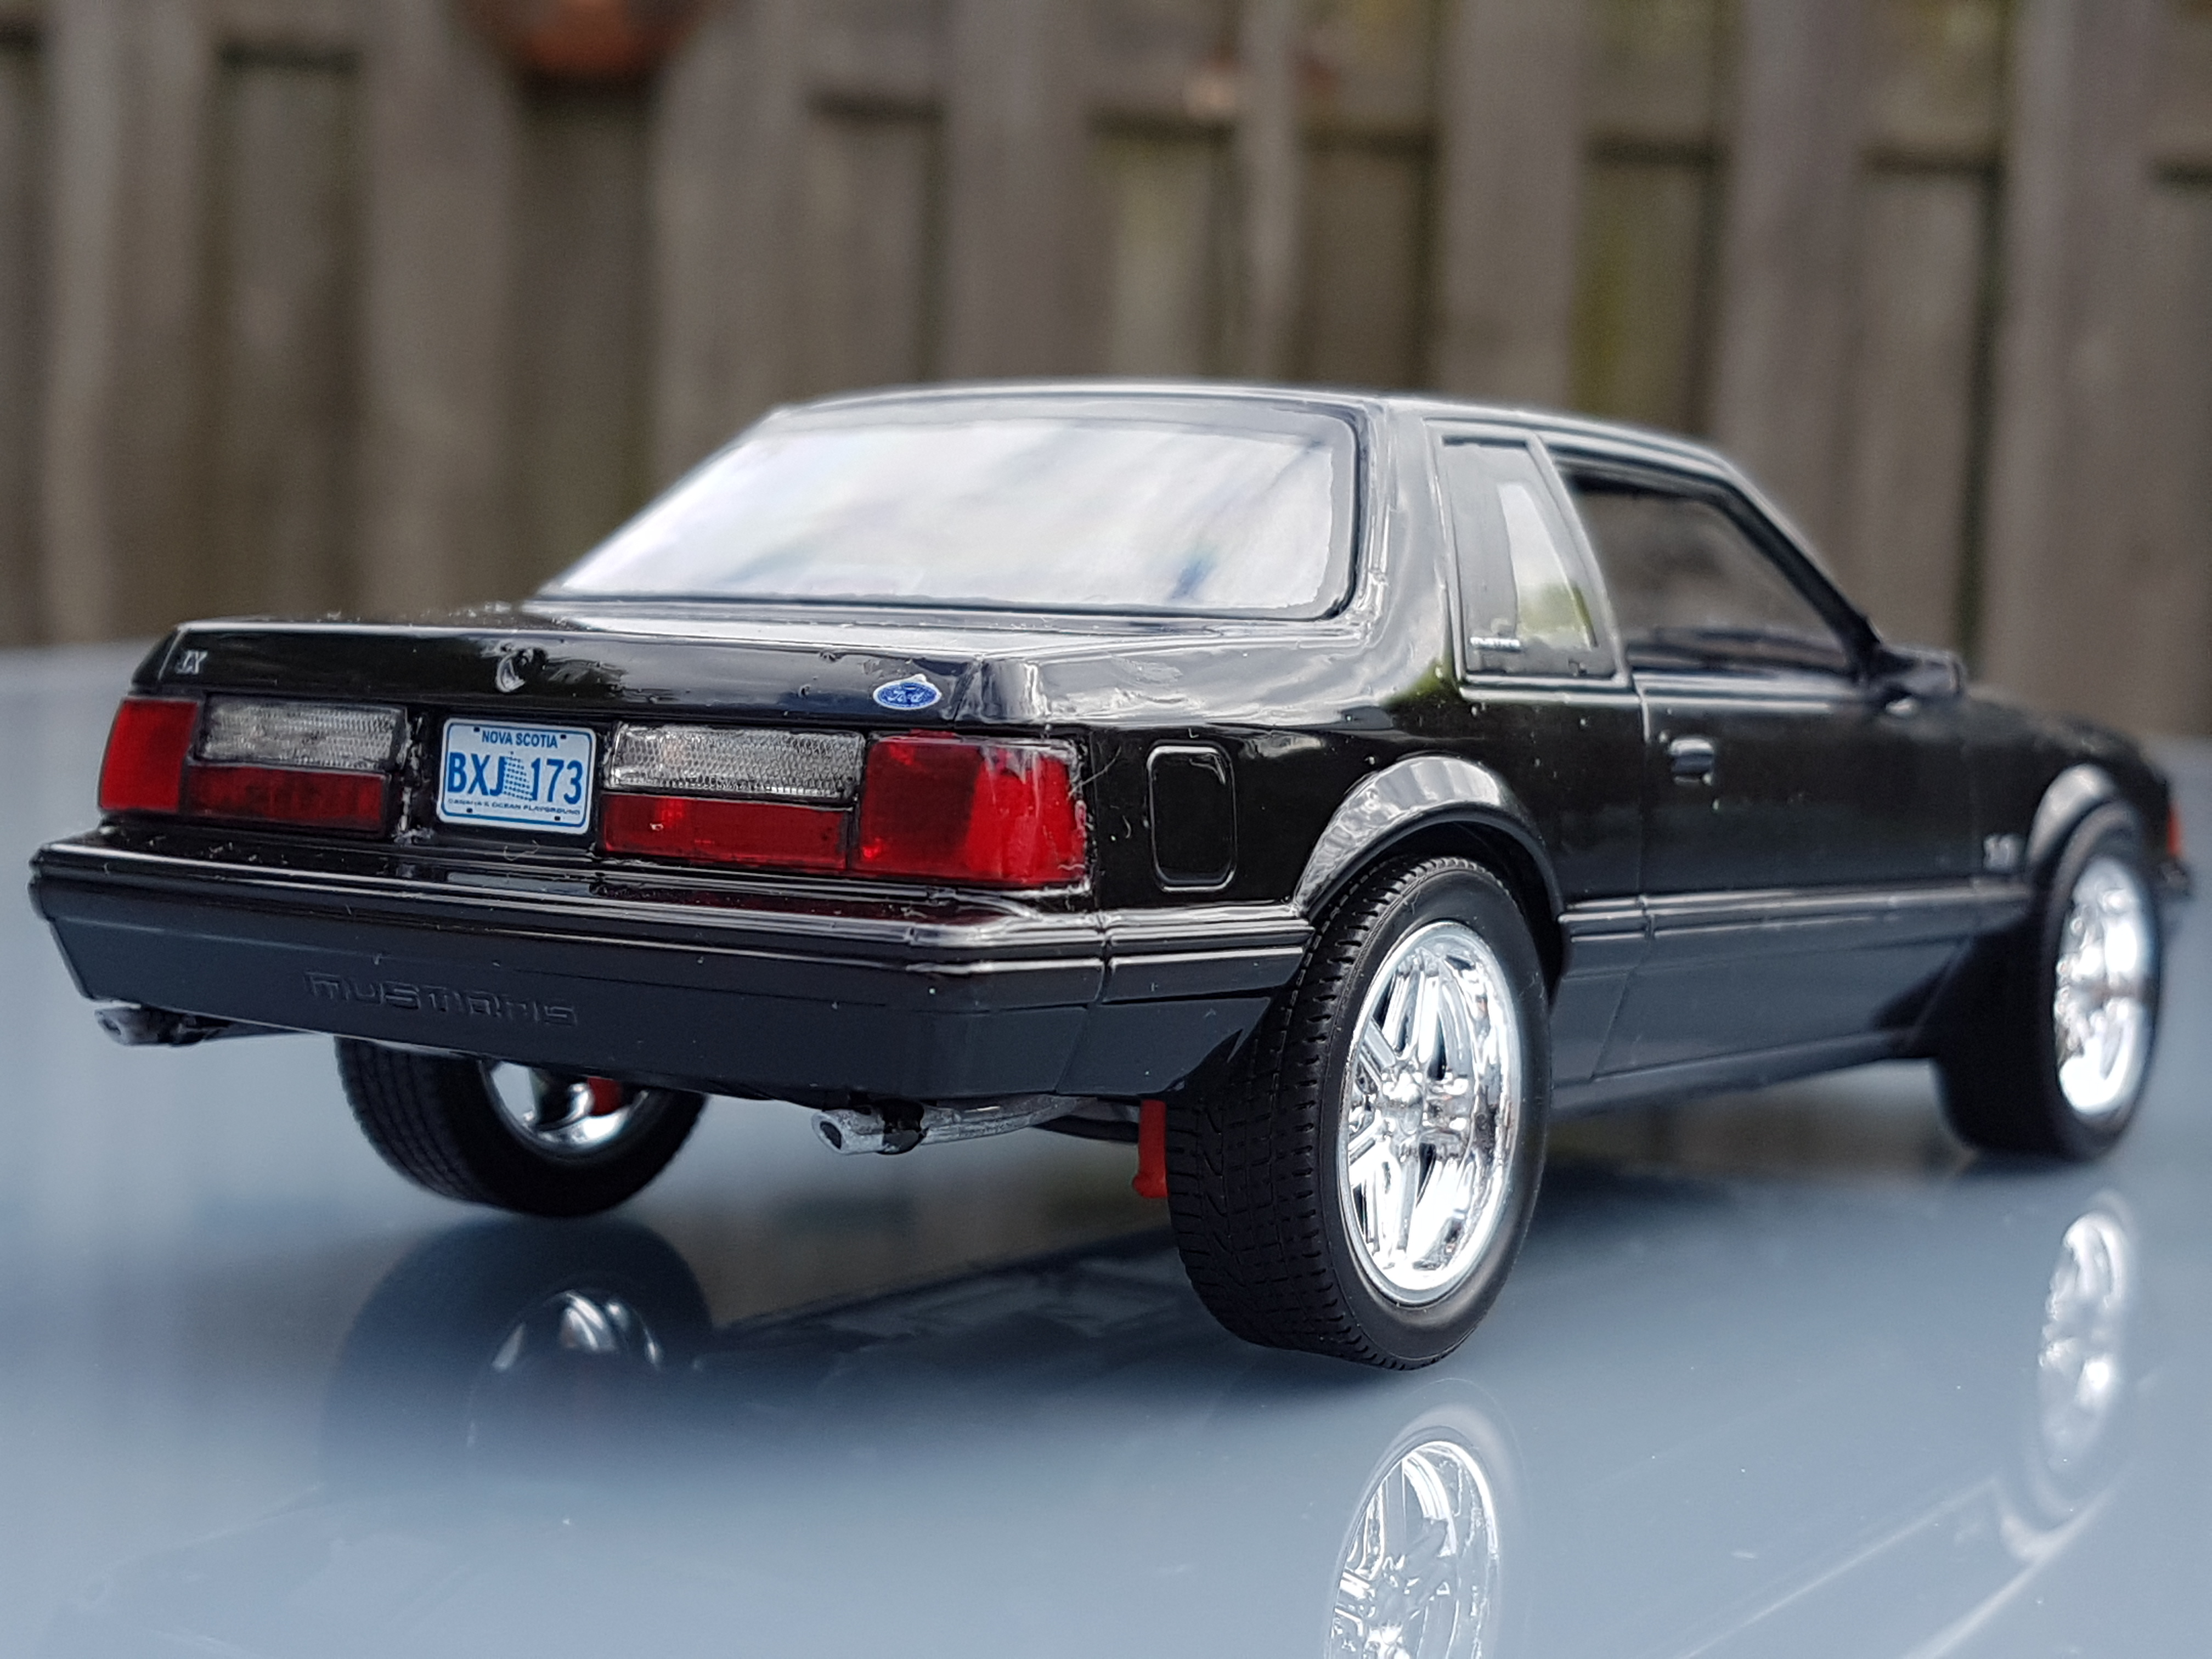 1990 ford mustang lx 5 0 revell rays kits. Black Bedroom Furniture Sets. Home Design Ideas